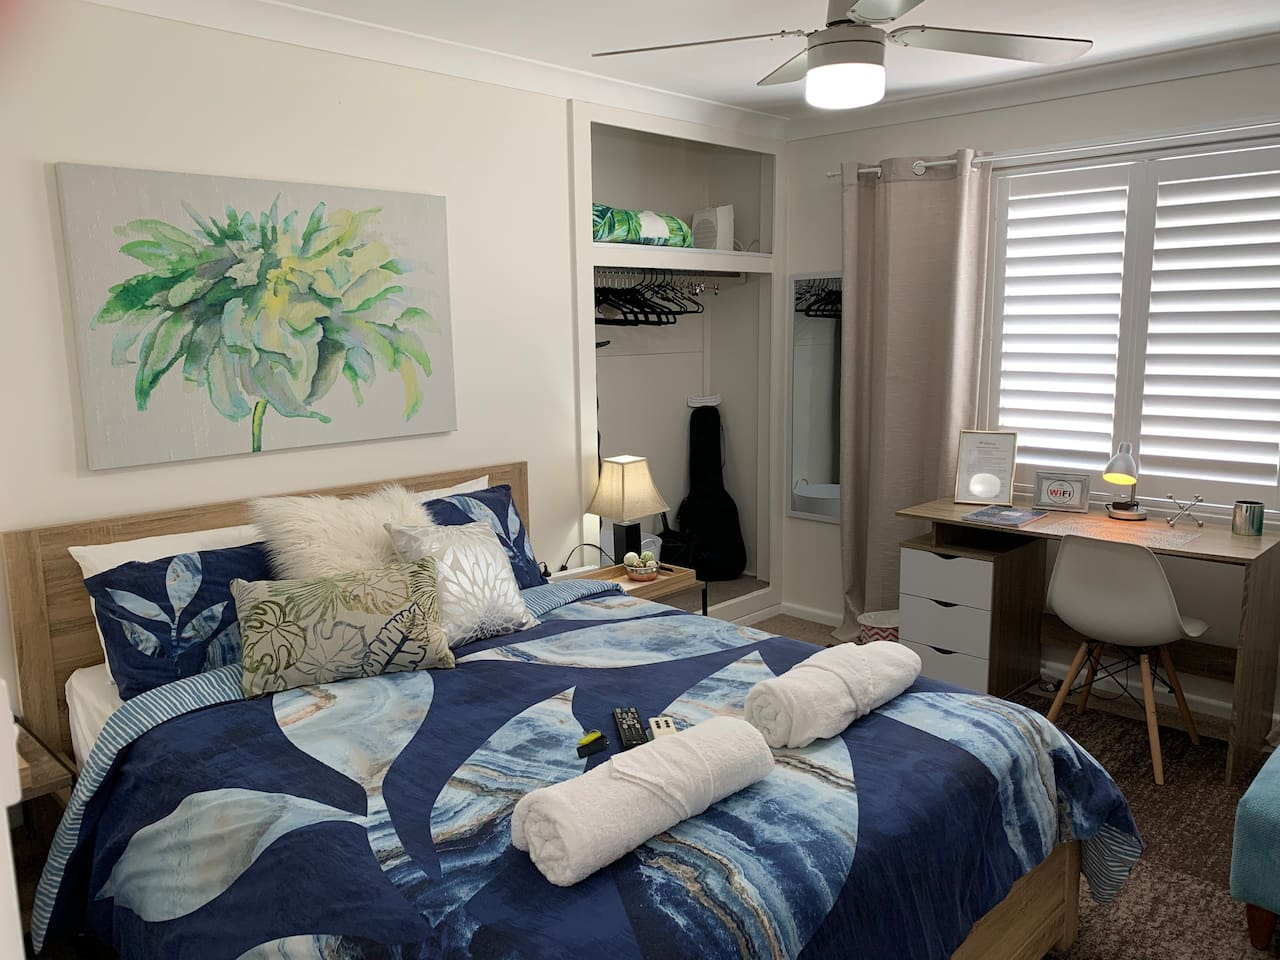 Queen size bed, air con, ceiling fan comfort on the second level of the home